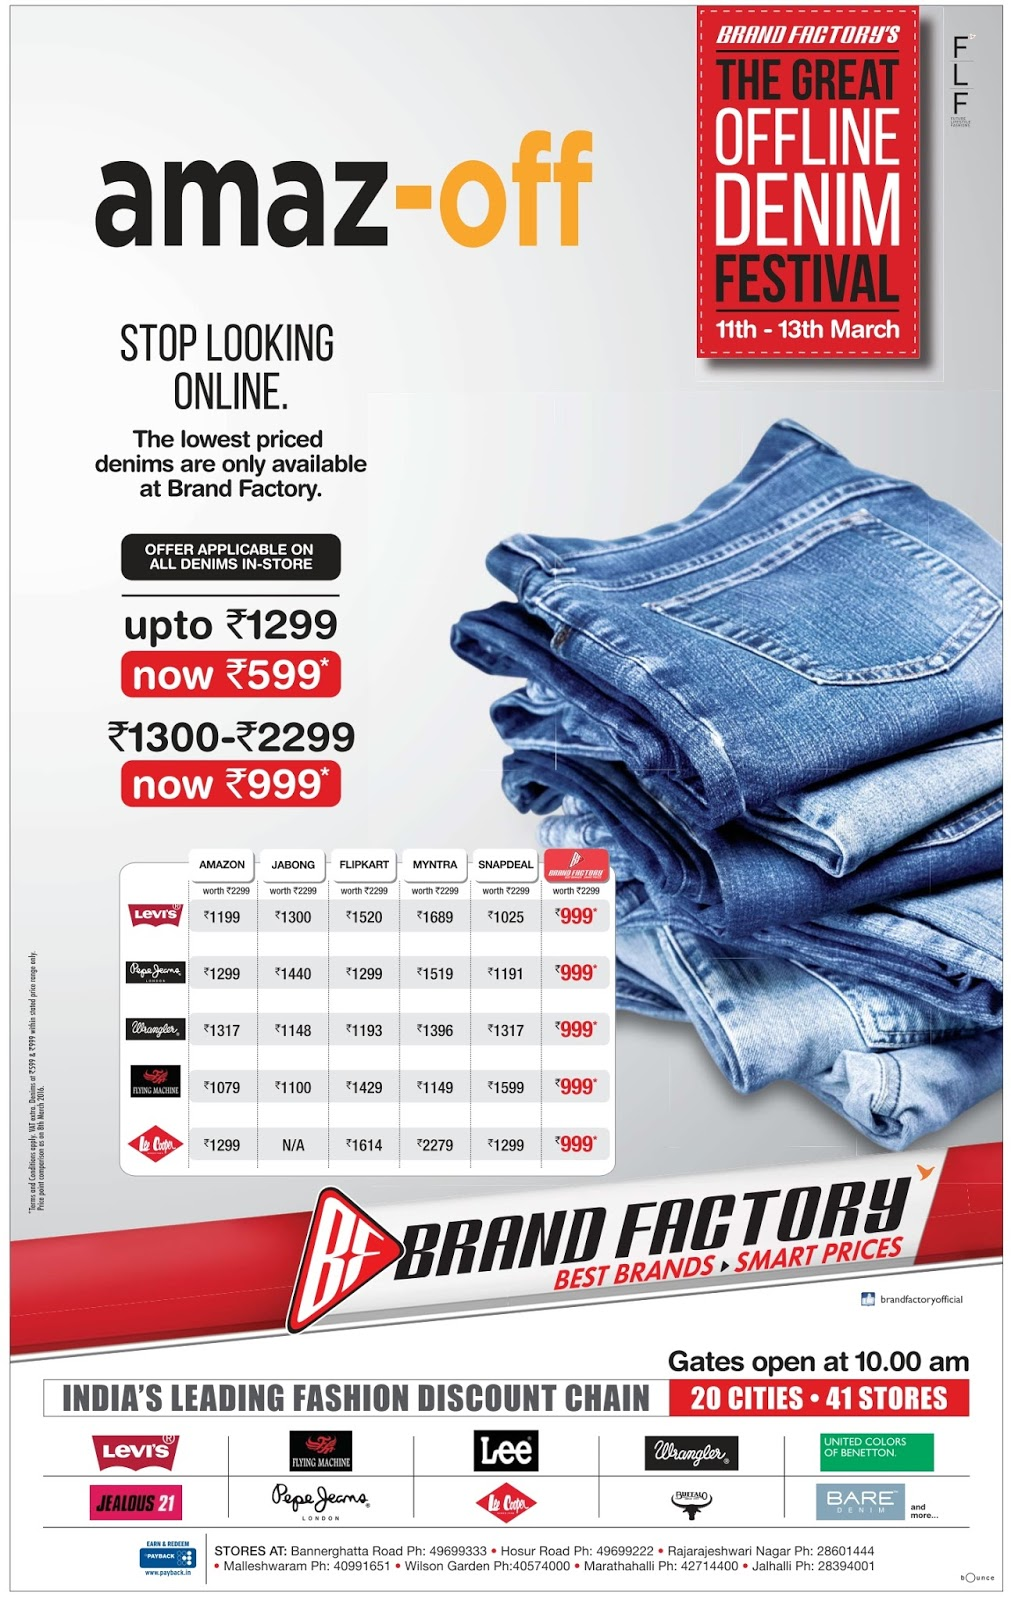 The Great offline Denim Festival @Brandfactory | March 2016 discount offers